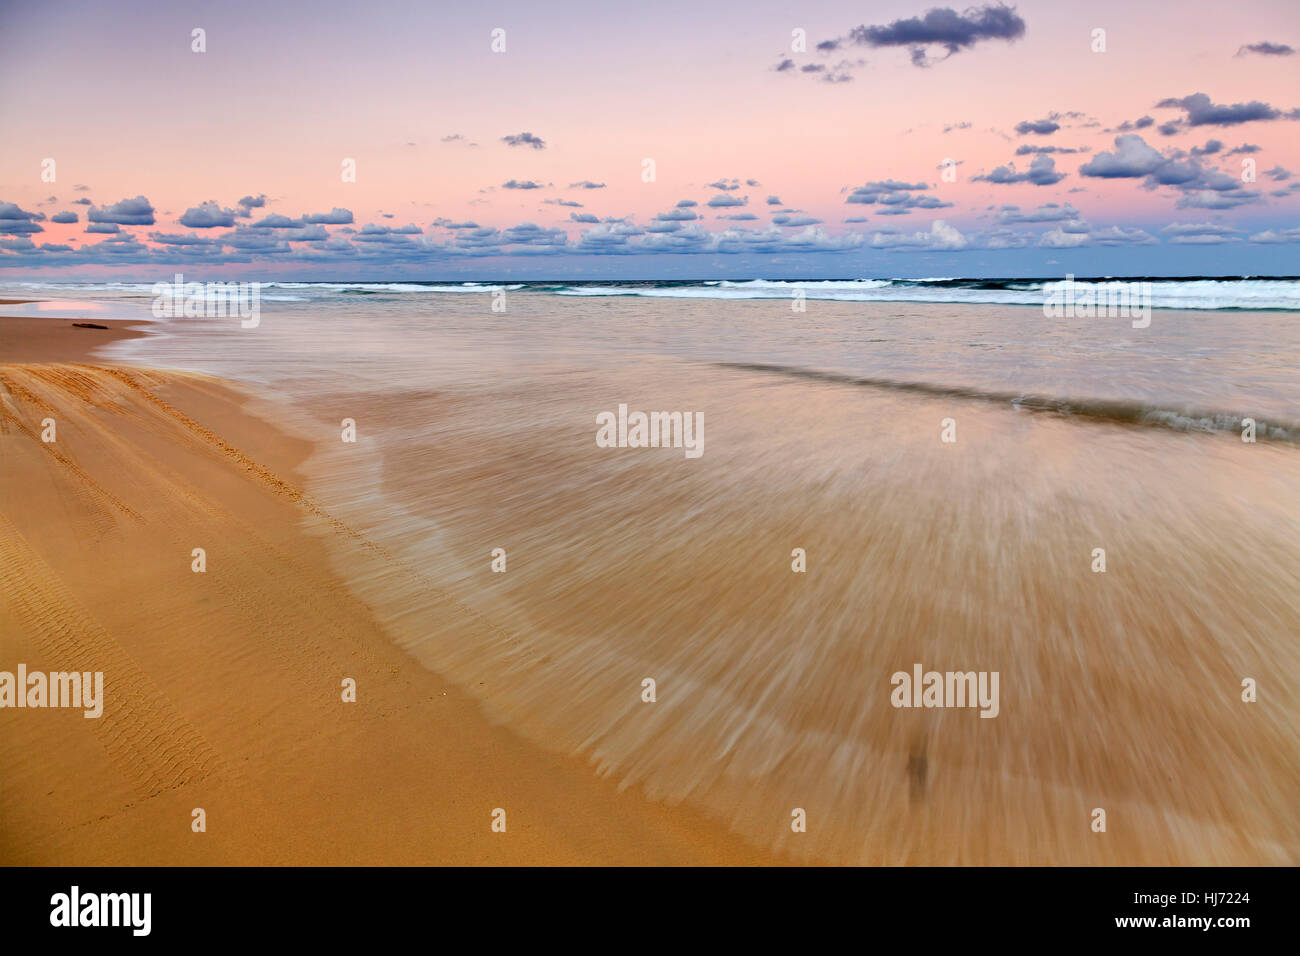 Fraser Island 75 miles beach at sunset long exposure blurred waves and tide over flat sandy shore in Australia, - Stock Image